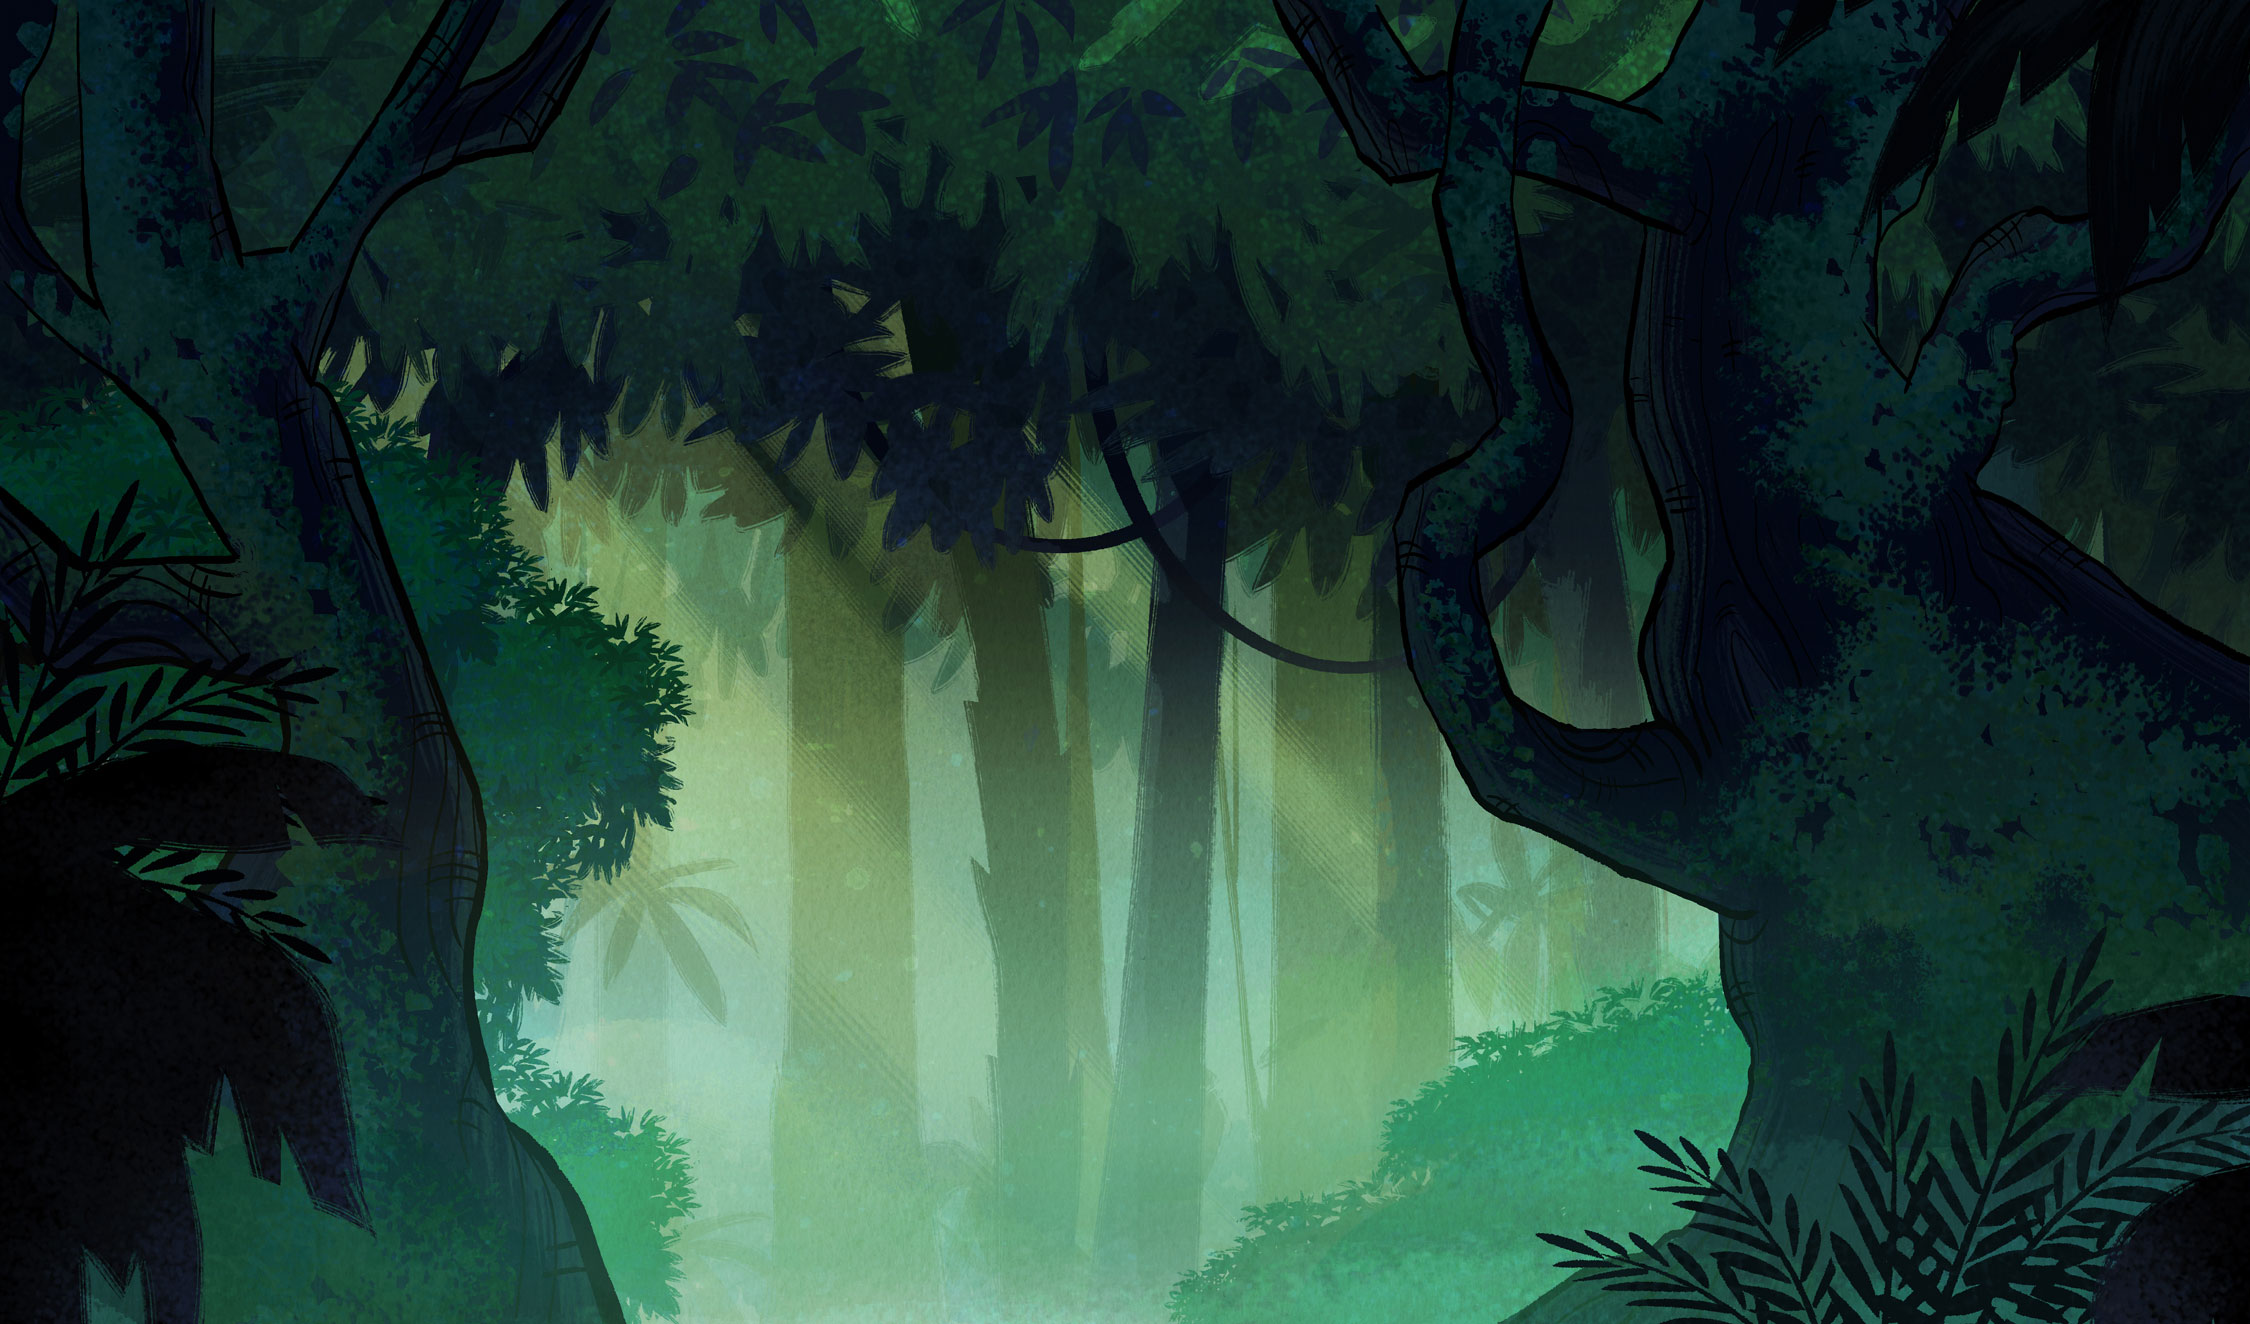 Ben 10 Background Painting